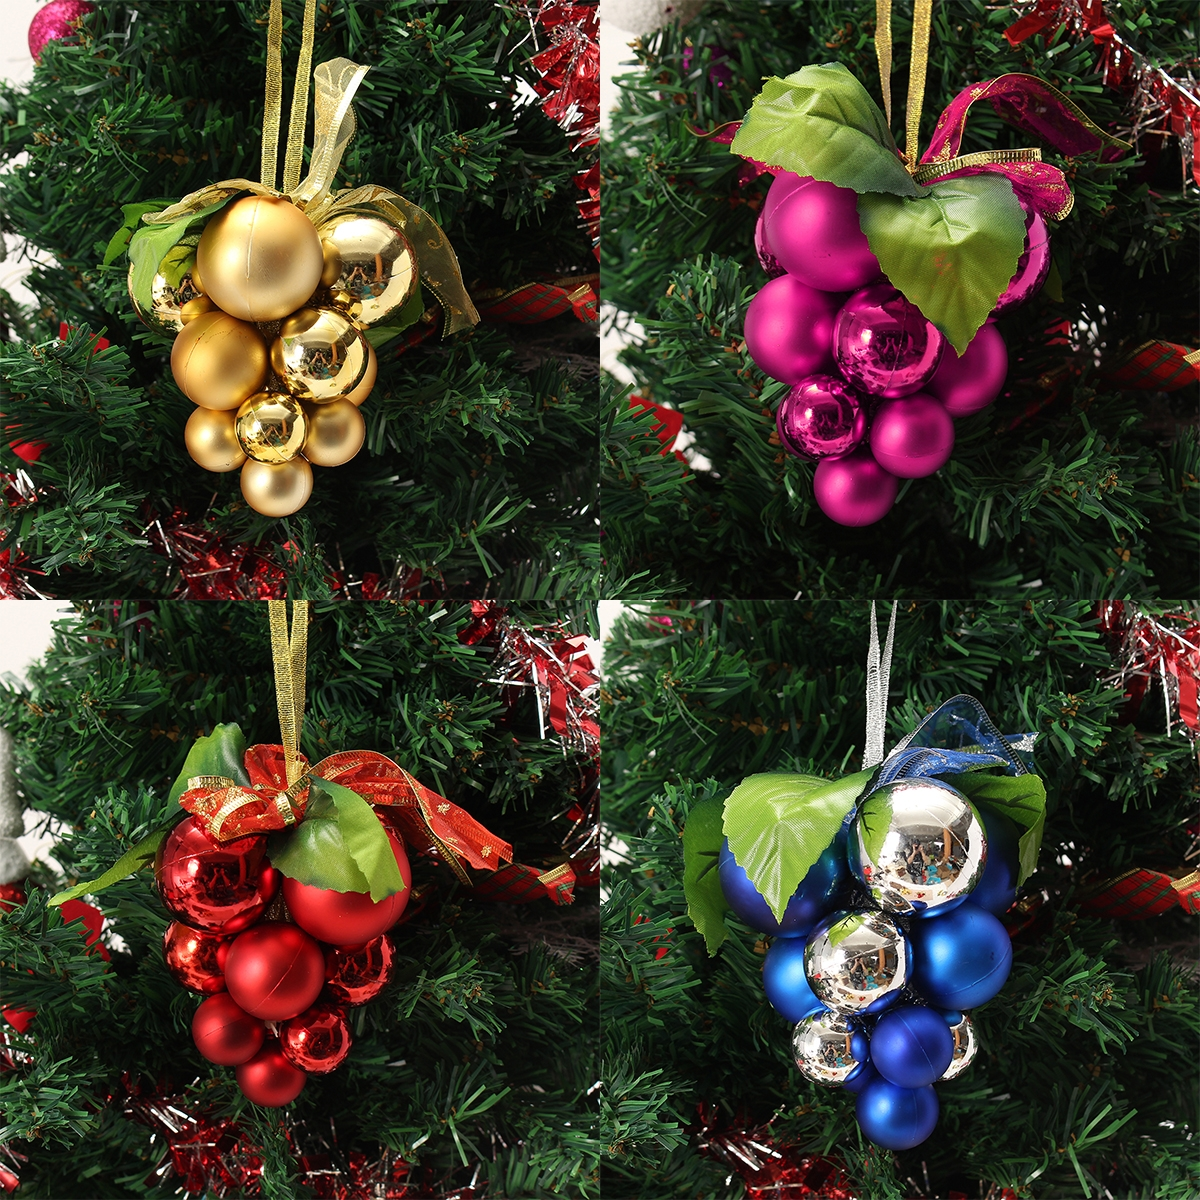 Christmas Ball Grape Strings Tree Decoration Ornaments Pendant Ball Hanging Adornments